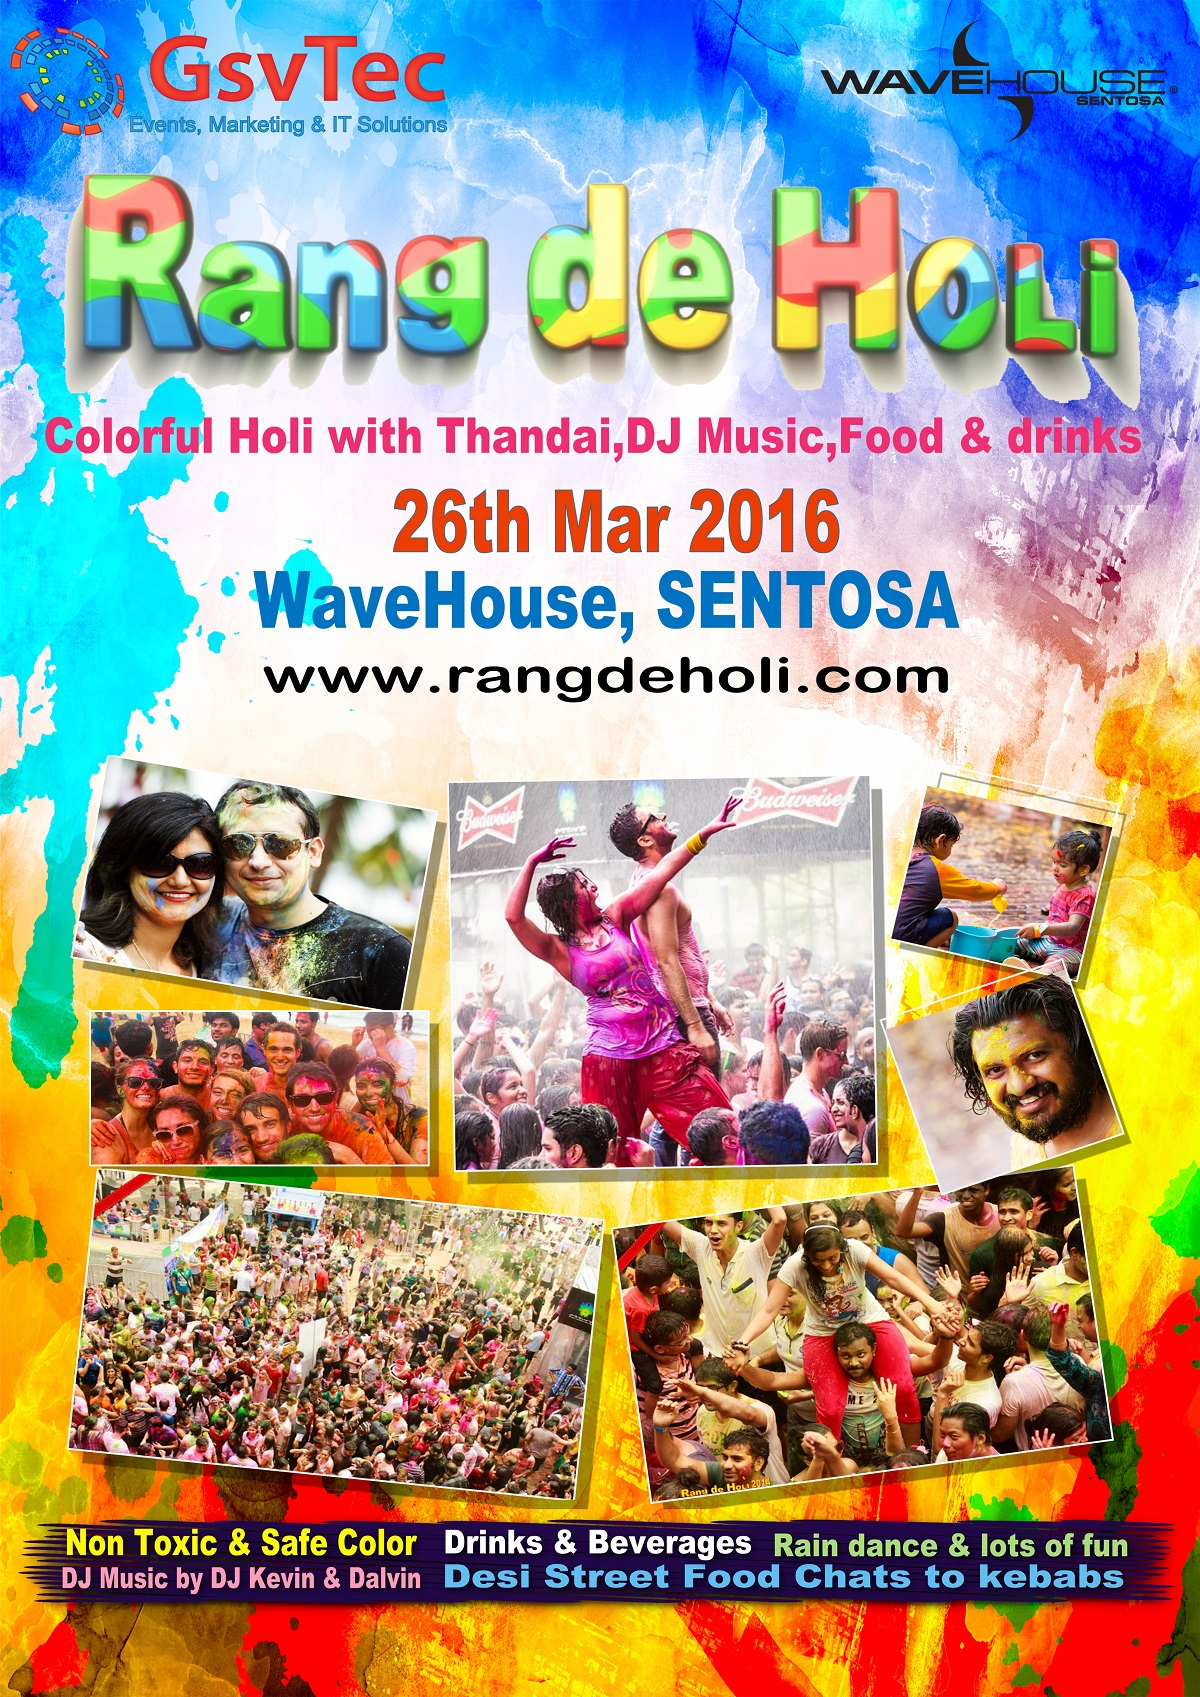 rang-de-holi-2016-singapore-website